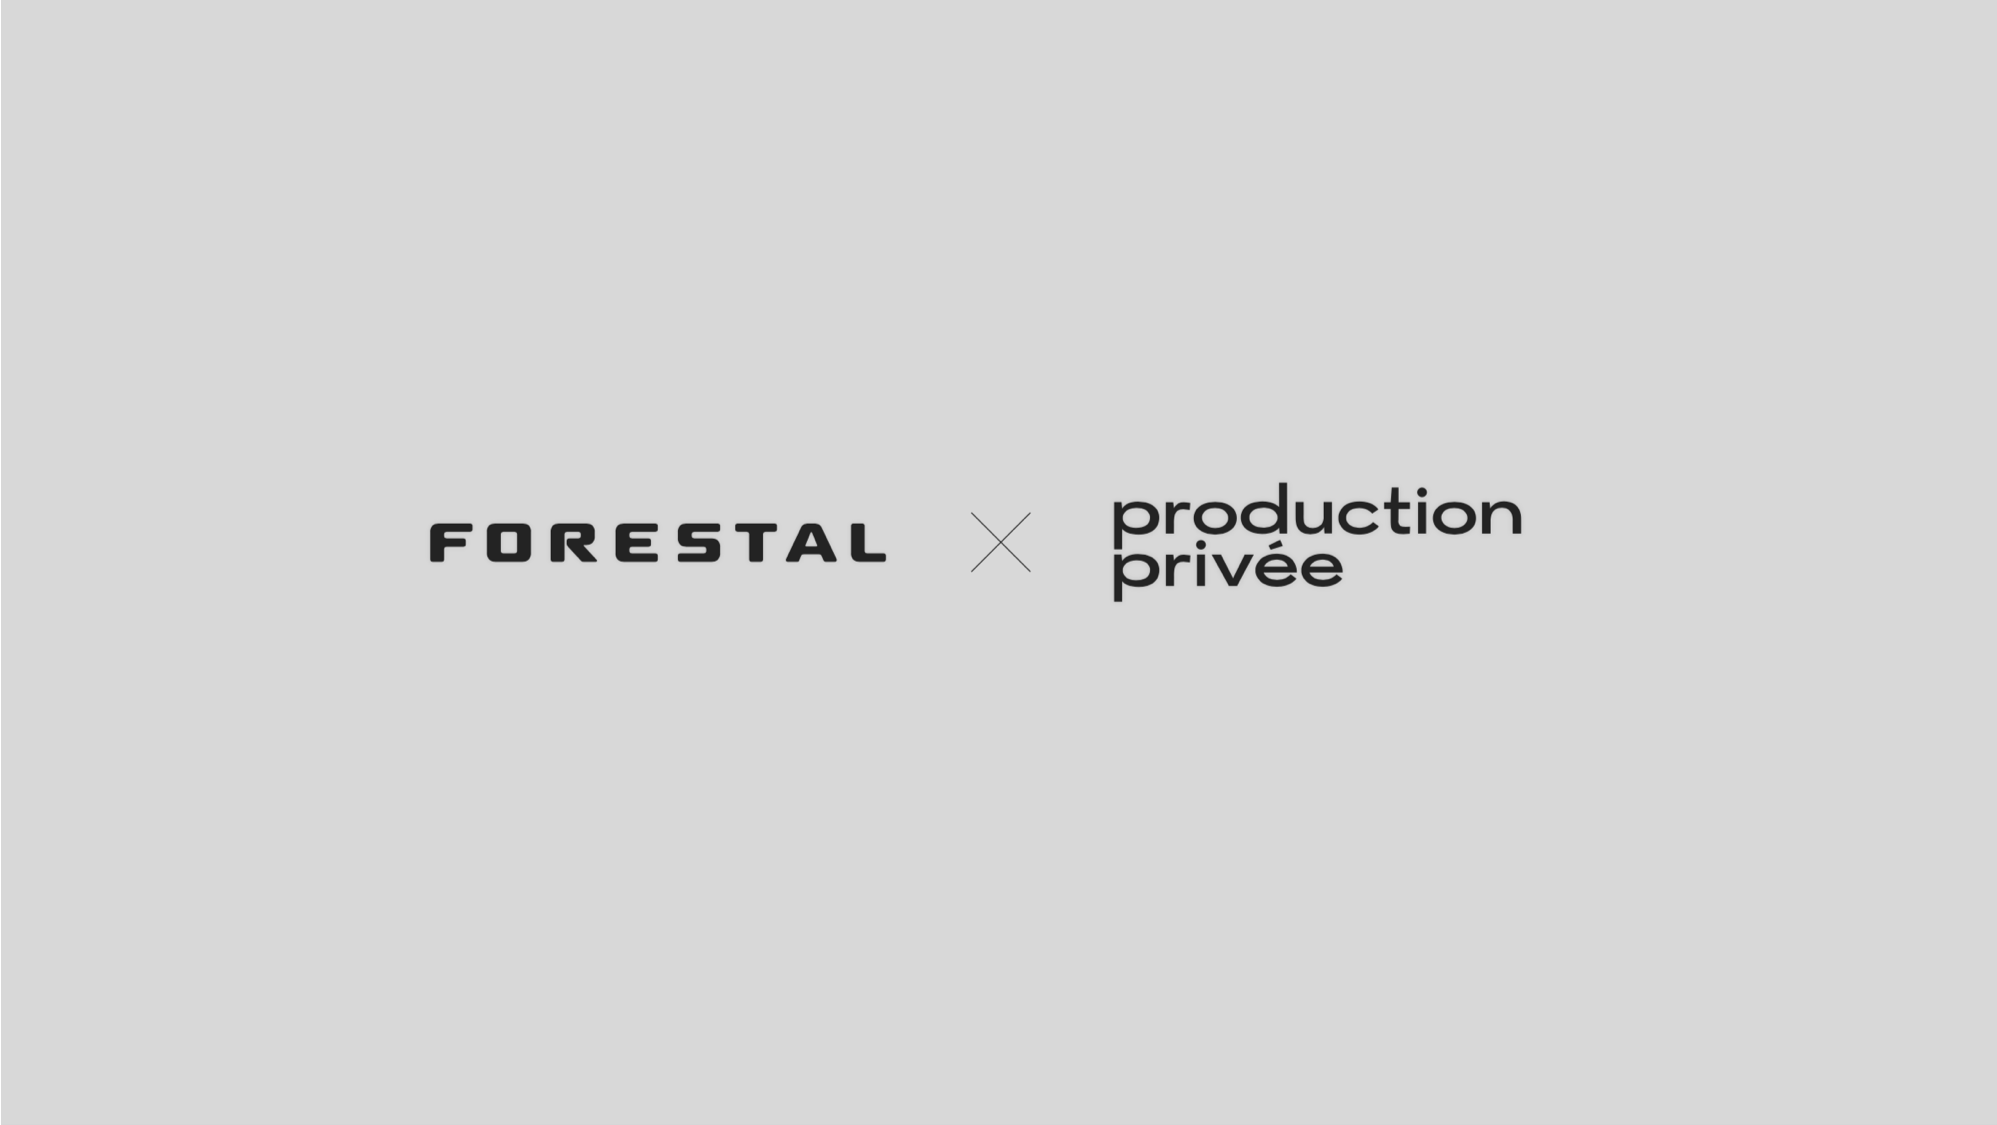 Production Privee and Forestal.